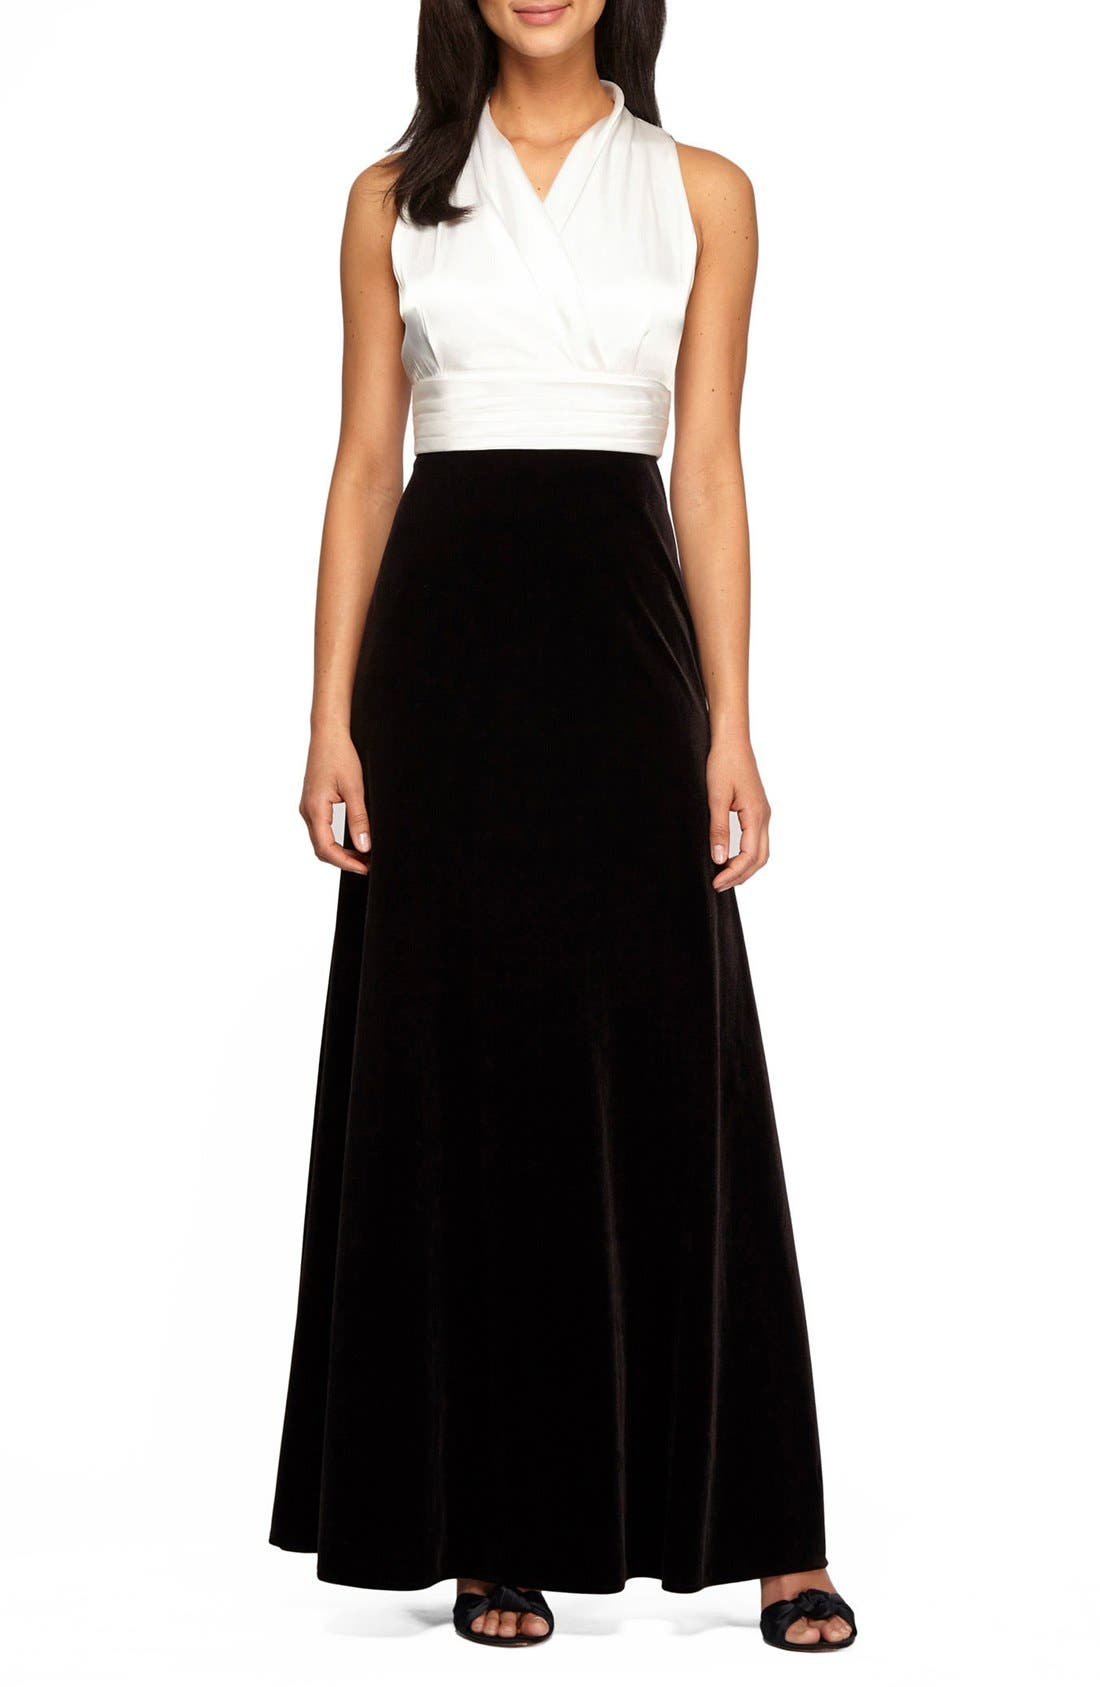 Main Image - Alex Evenings Stretch Fit & Flare Gown